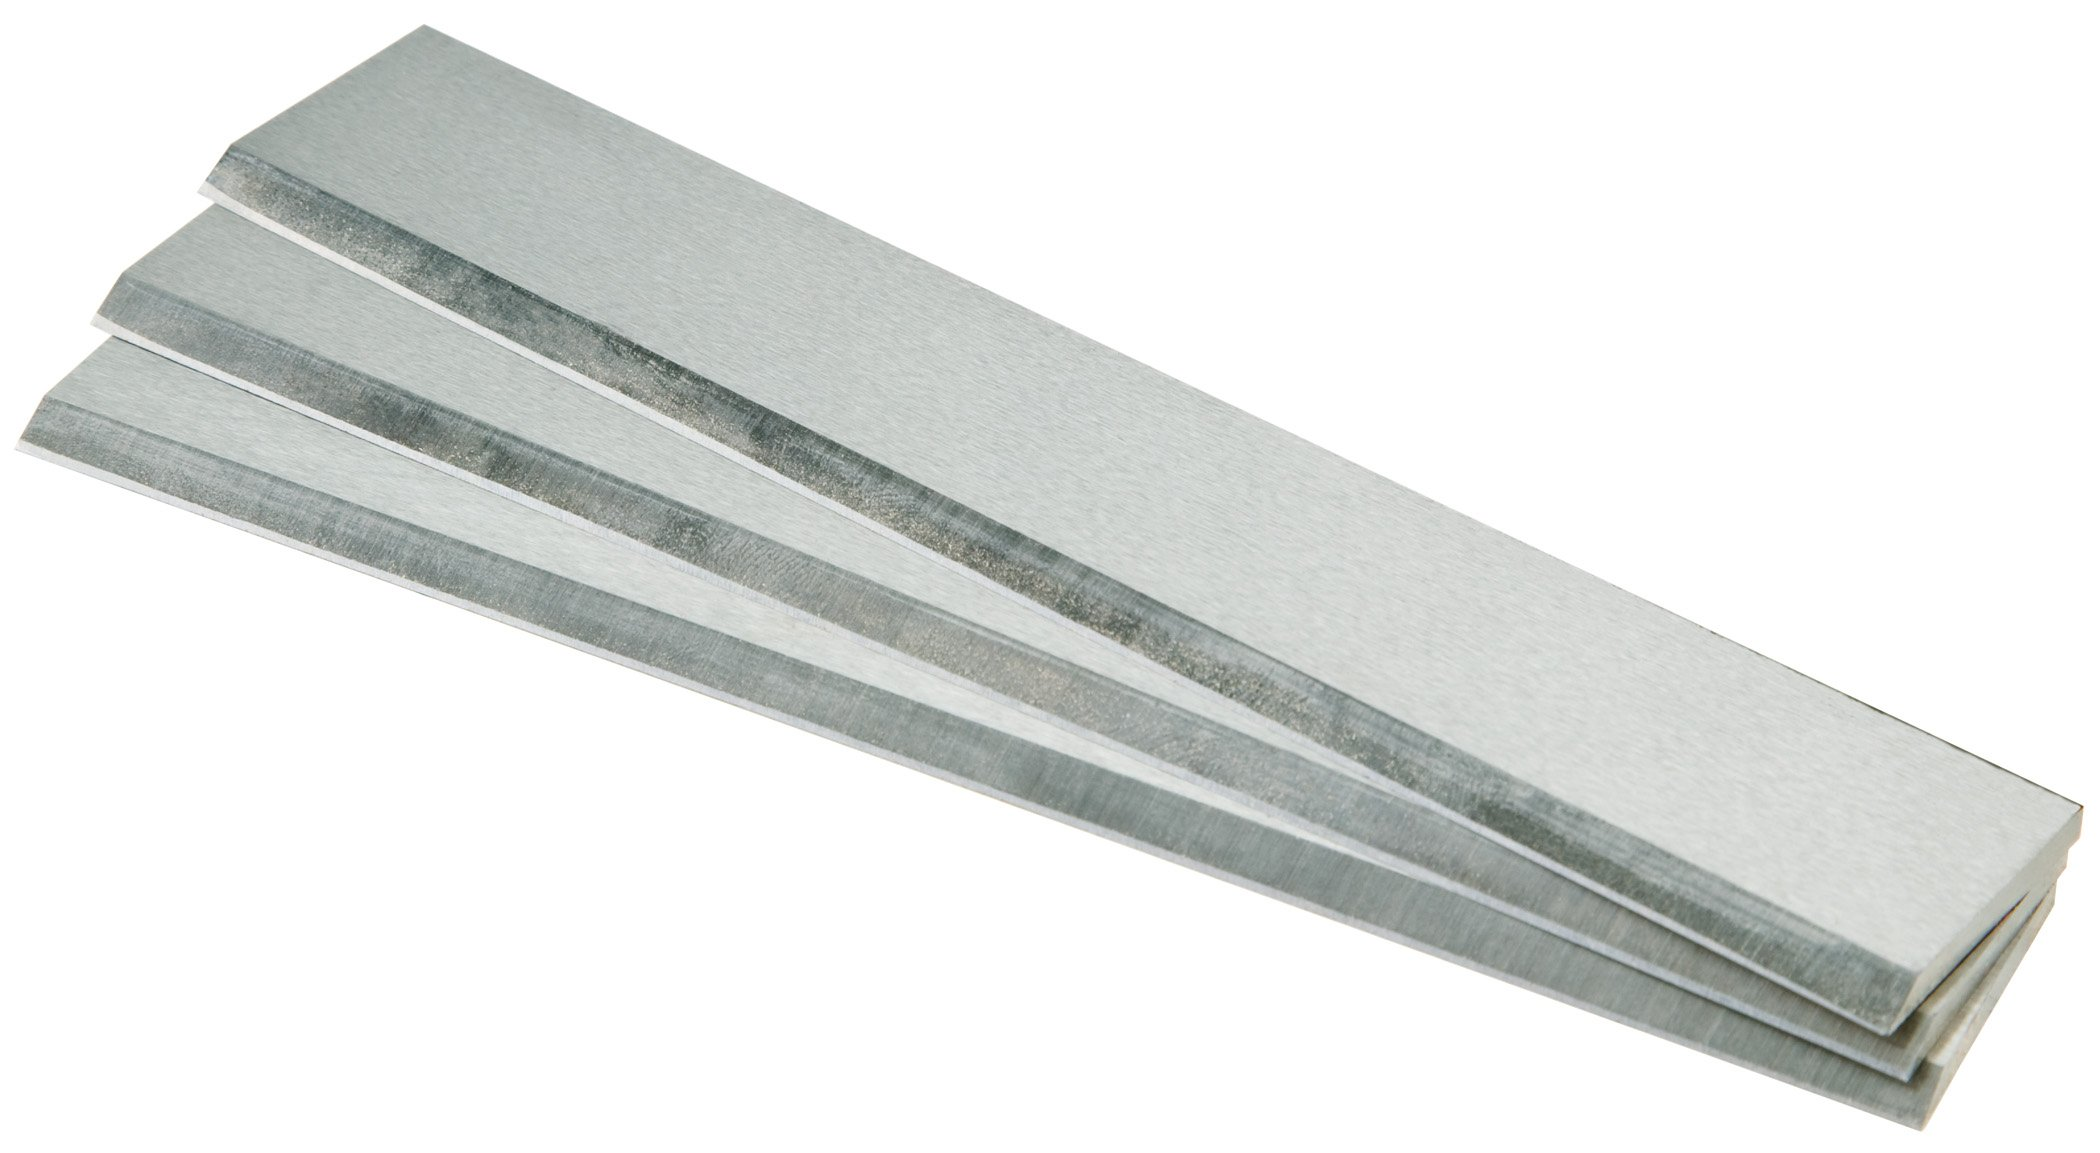 Steelex D3689 6-Inch Jointer Knives for ST1001 Set, 3-Piece by Steelex